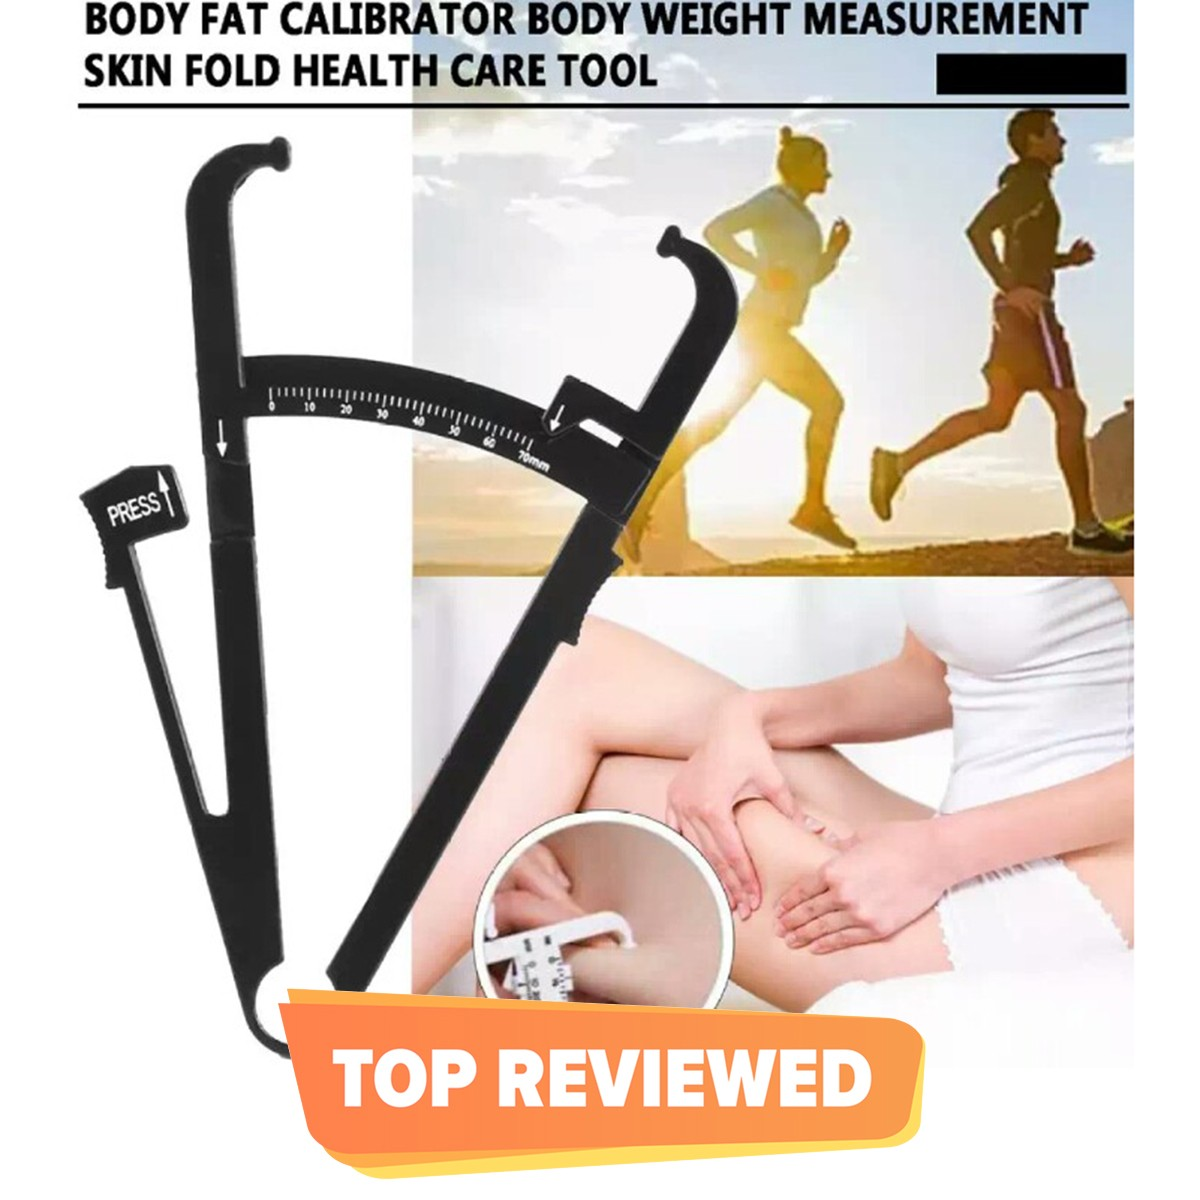 Personal Body Fat Caliper Skinfold Fitness Measurement Tool With Measuring Chart for Men And Women